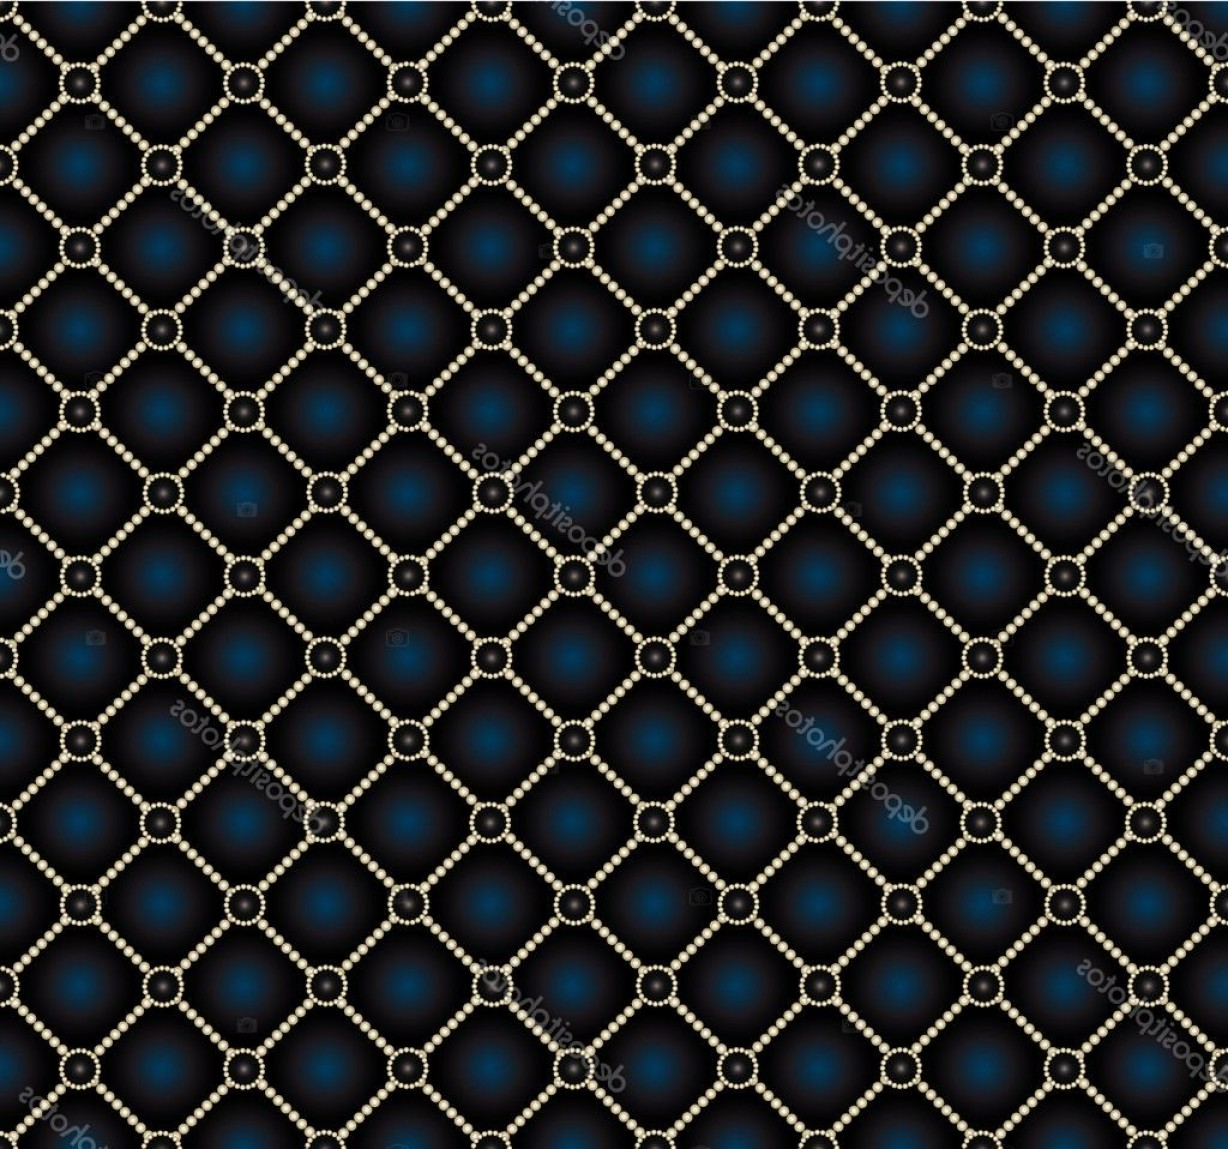 Vector Seamless Leather Pattern: Stock Illustration Vector Seamless Repeating Leather Upholstery